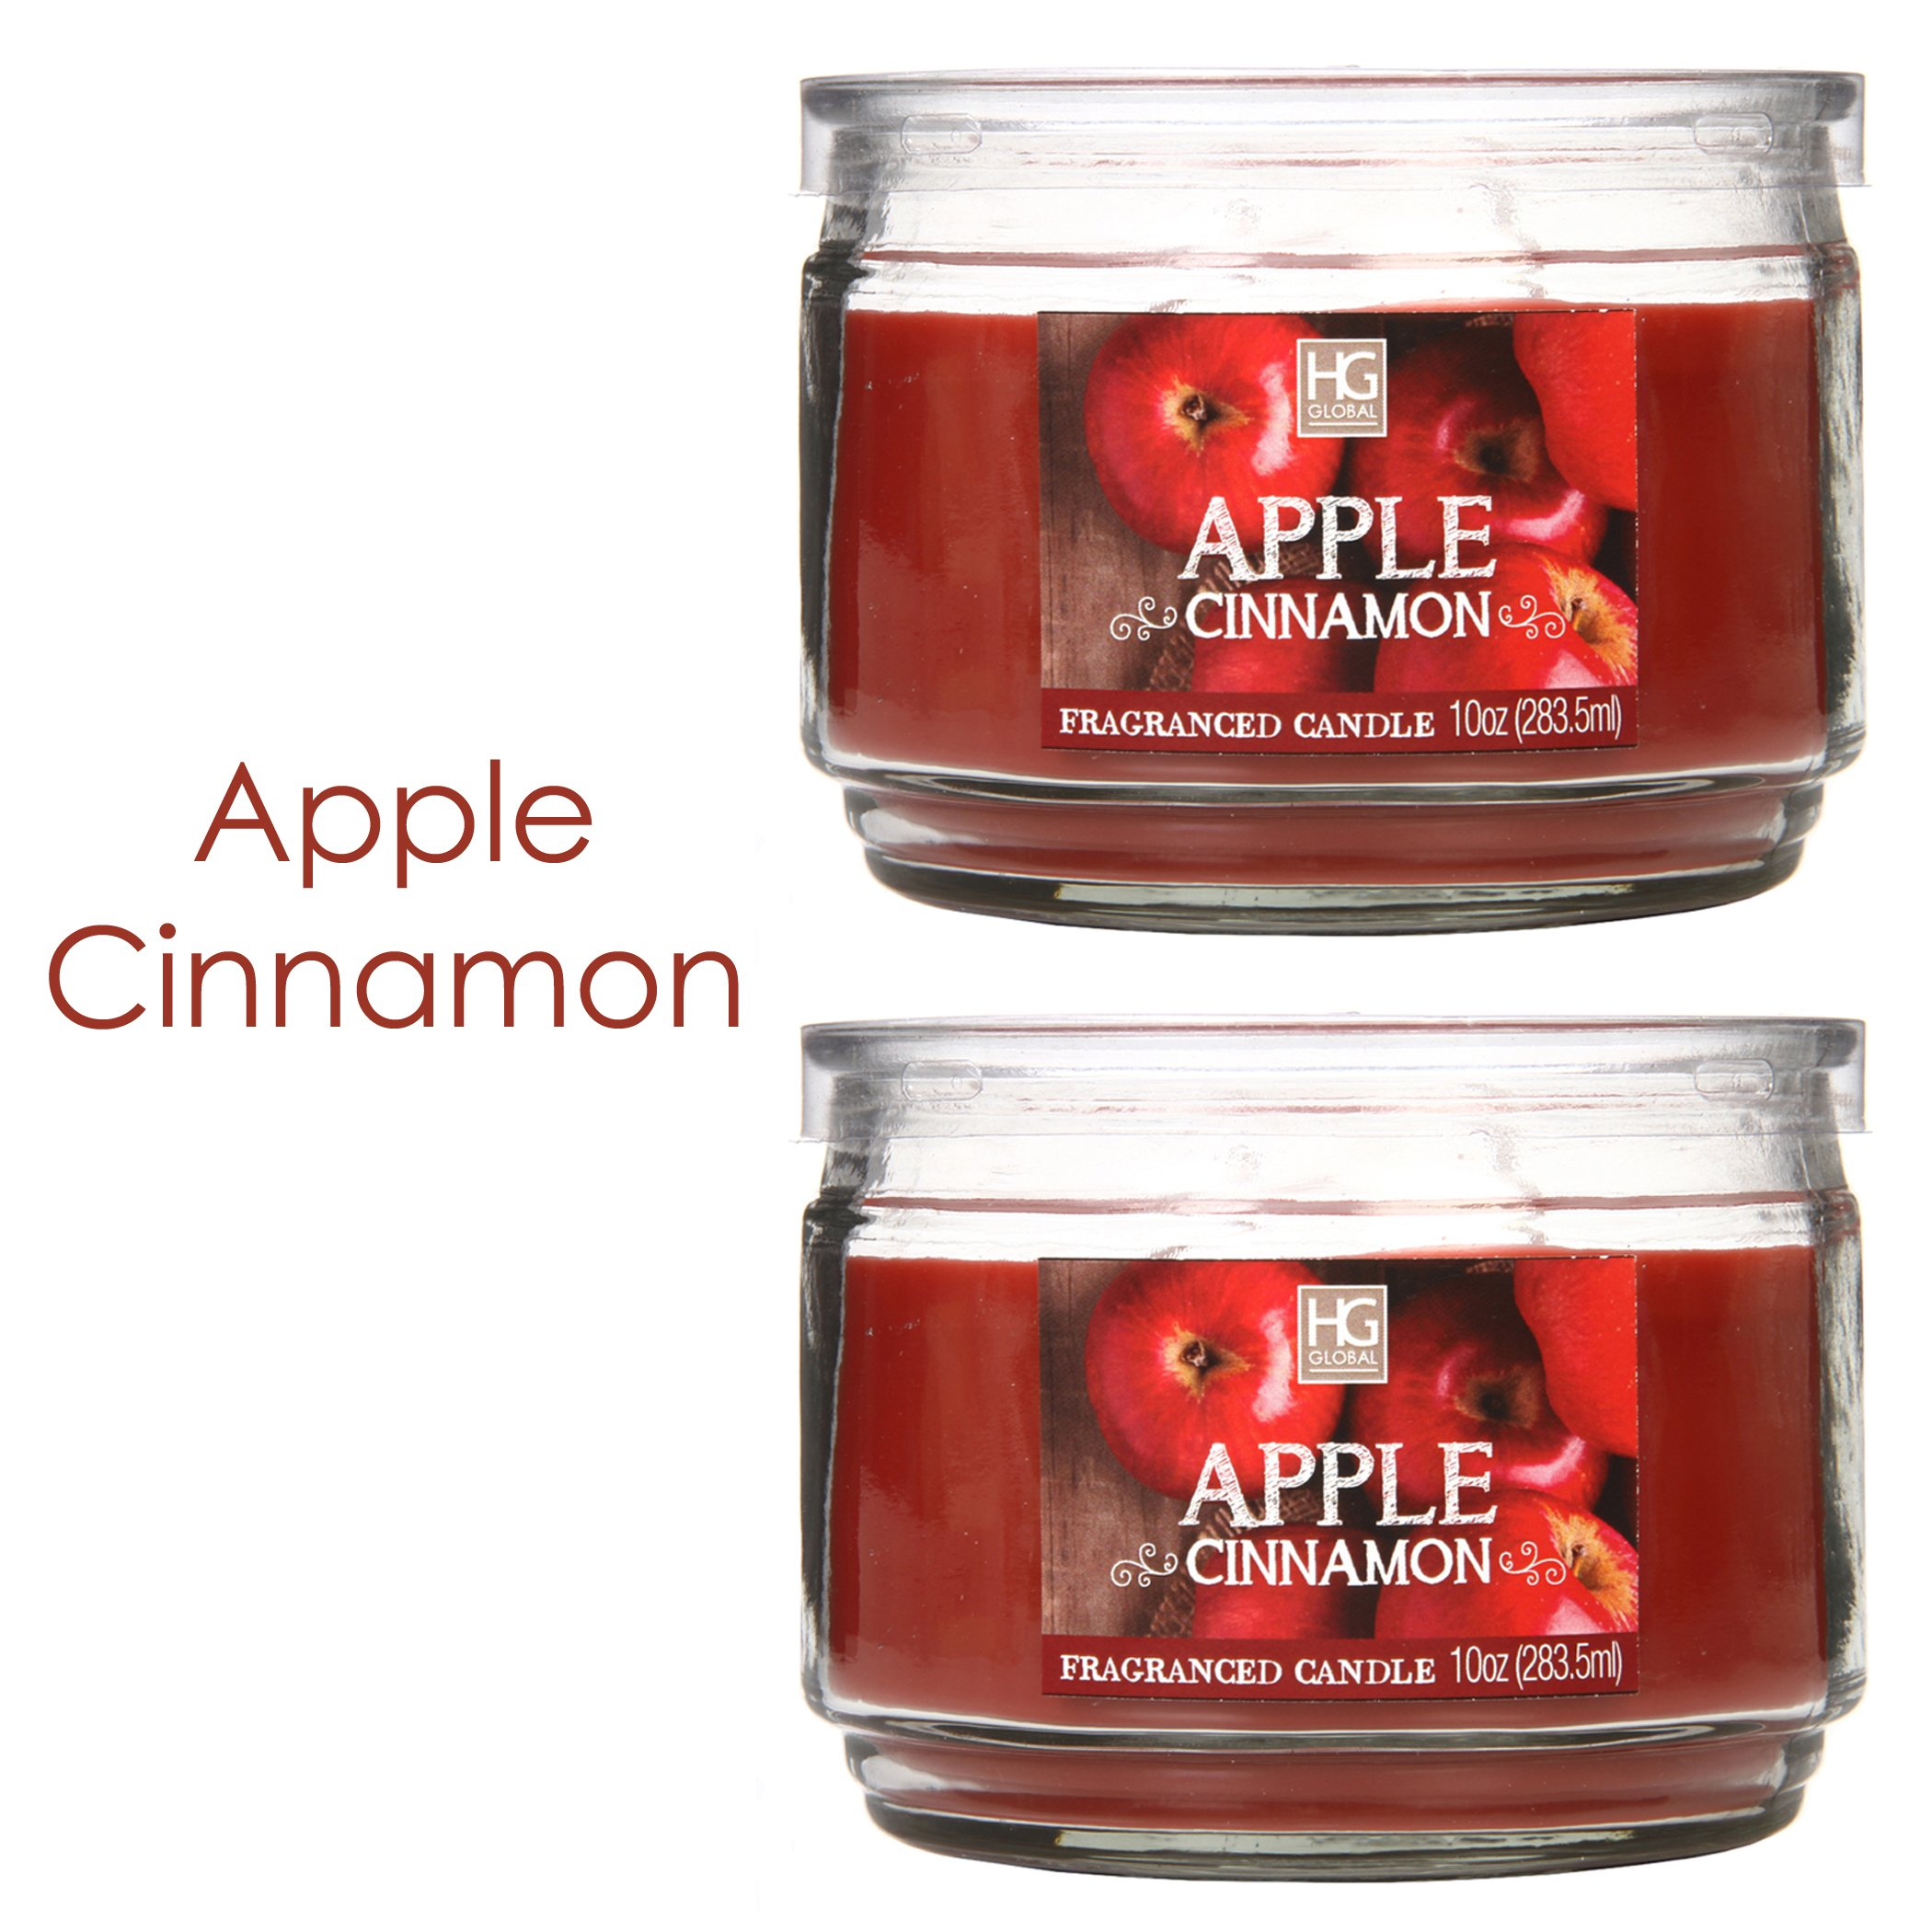 Hosley Set of 2 Apple Cinnamon Highly Scented, 2 Wick, 10 Oz Wax, Jar Candle. Ideal Aromatherapy Votive GIFT for Party Favor, Bridal, Wedding Spa Reiki, Meditation, Bathroom Settings O9